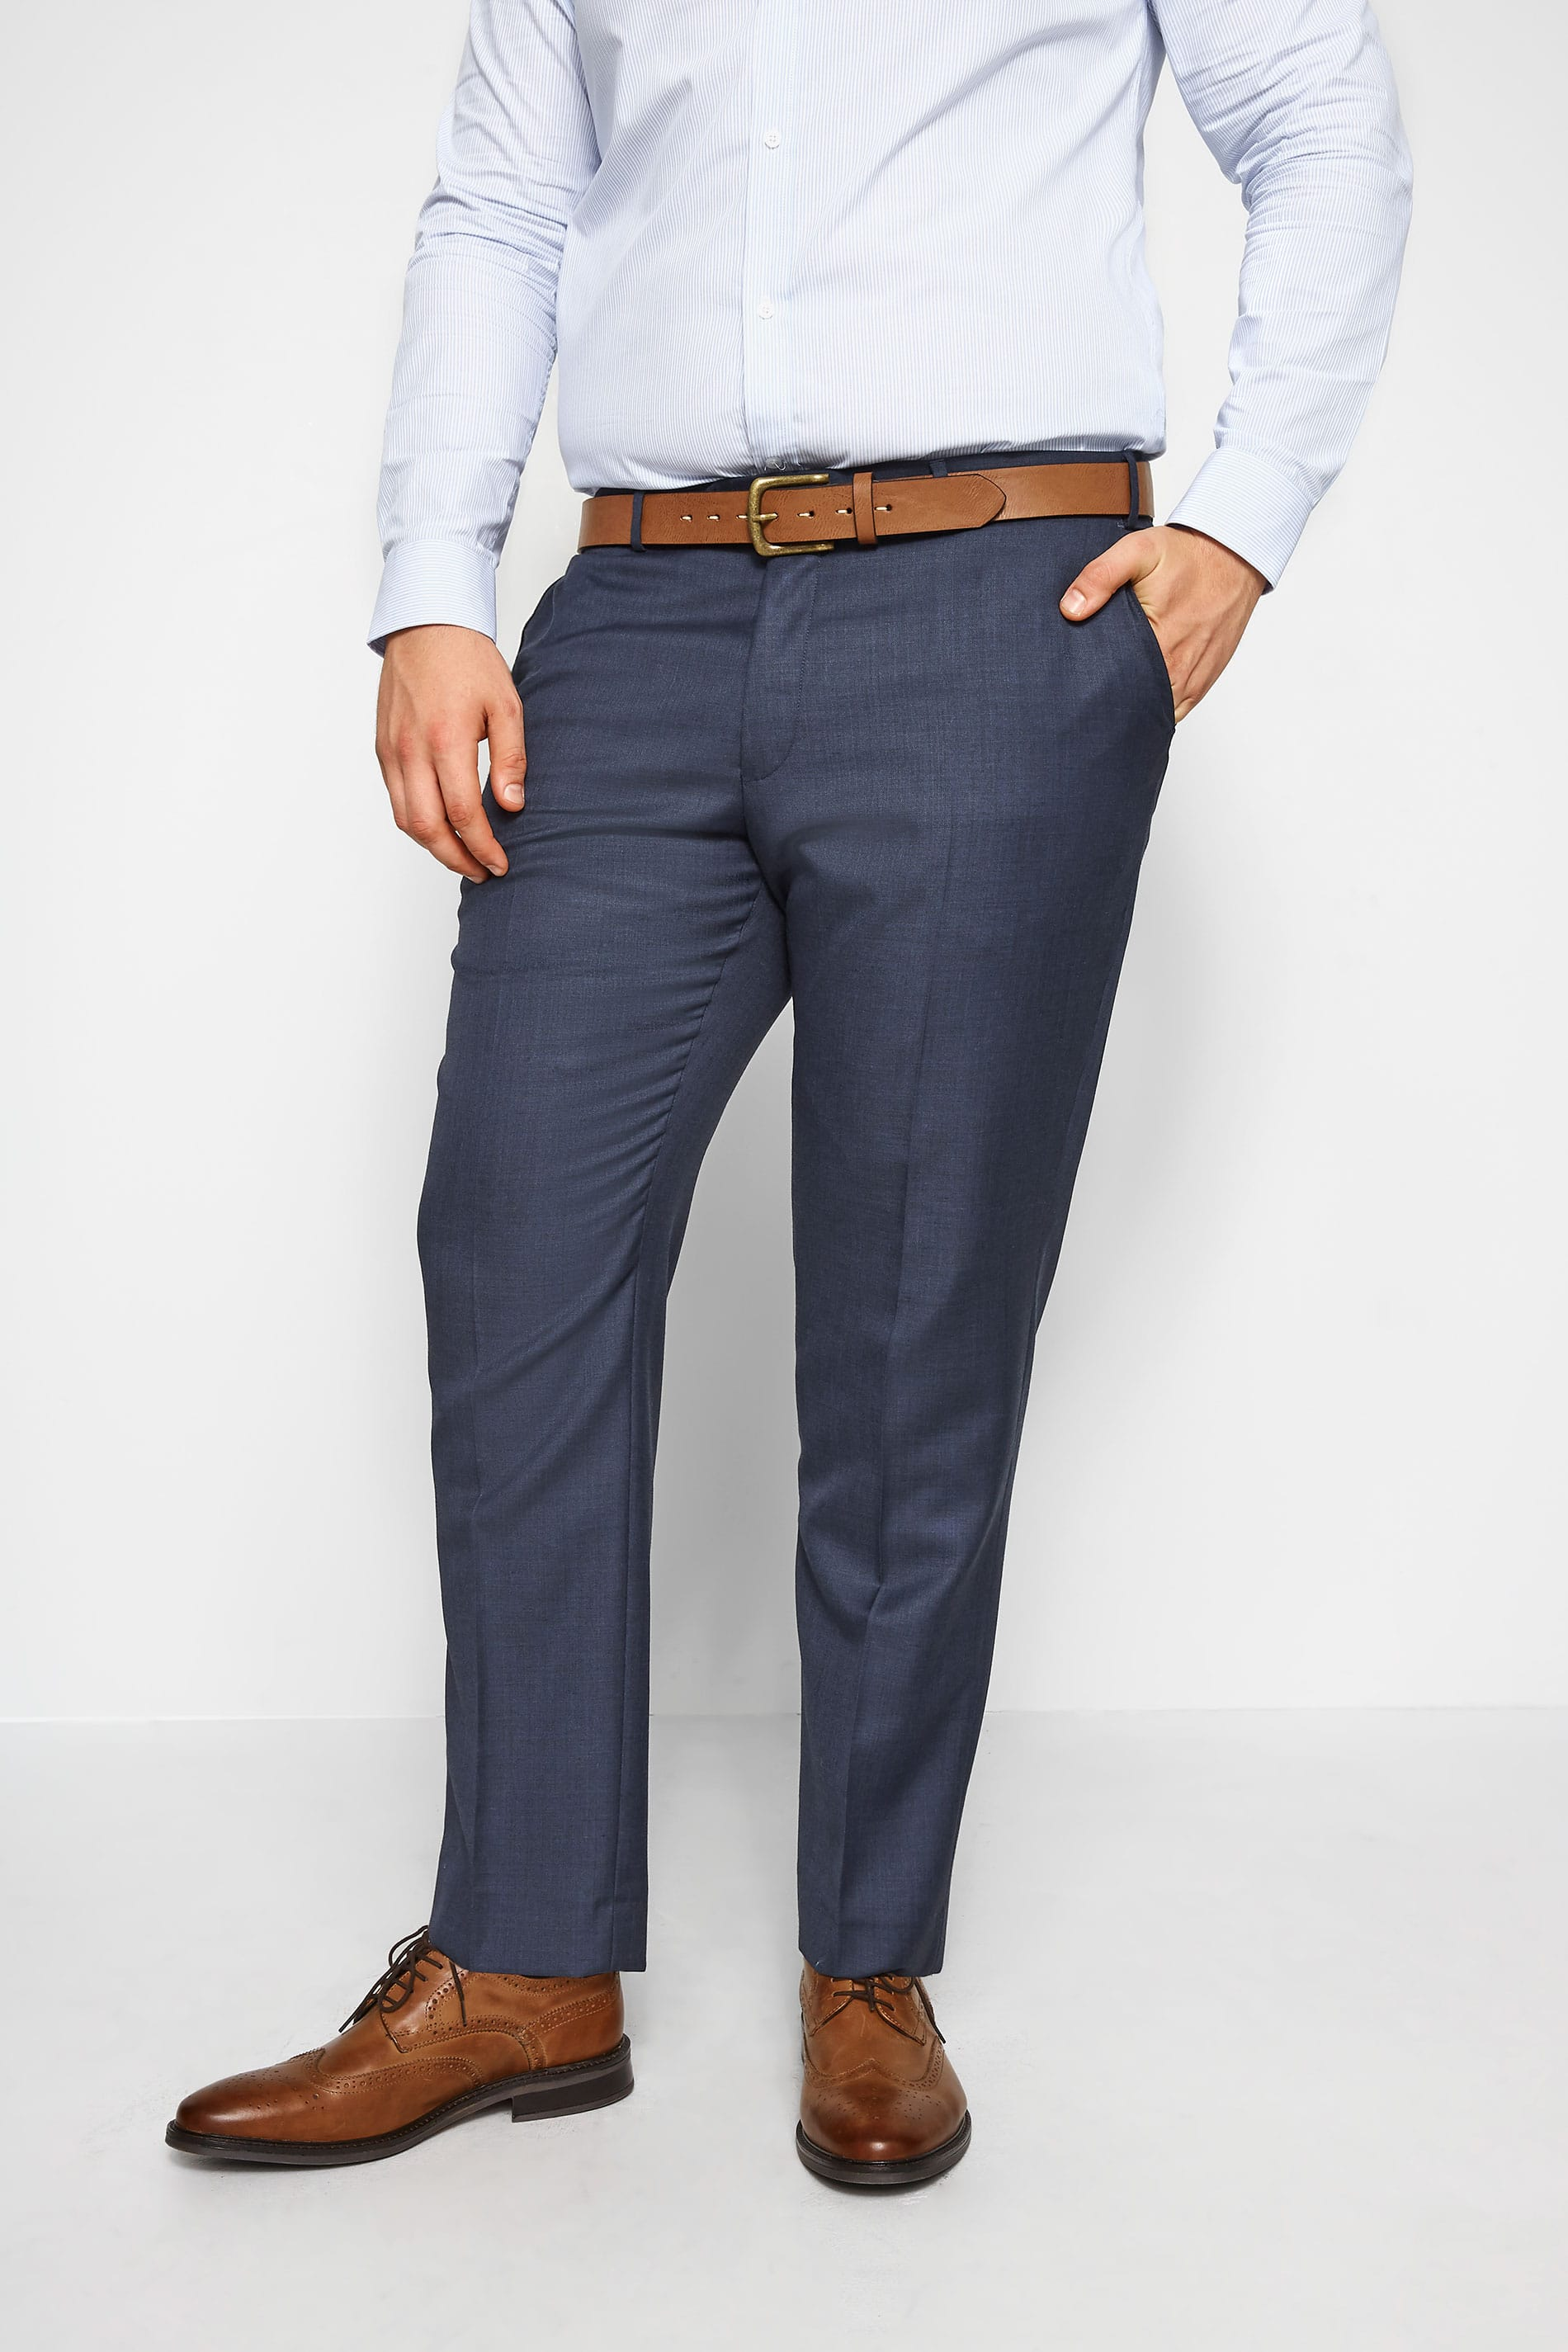 BadRhino Navy Sharkskin Suit Trousers